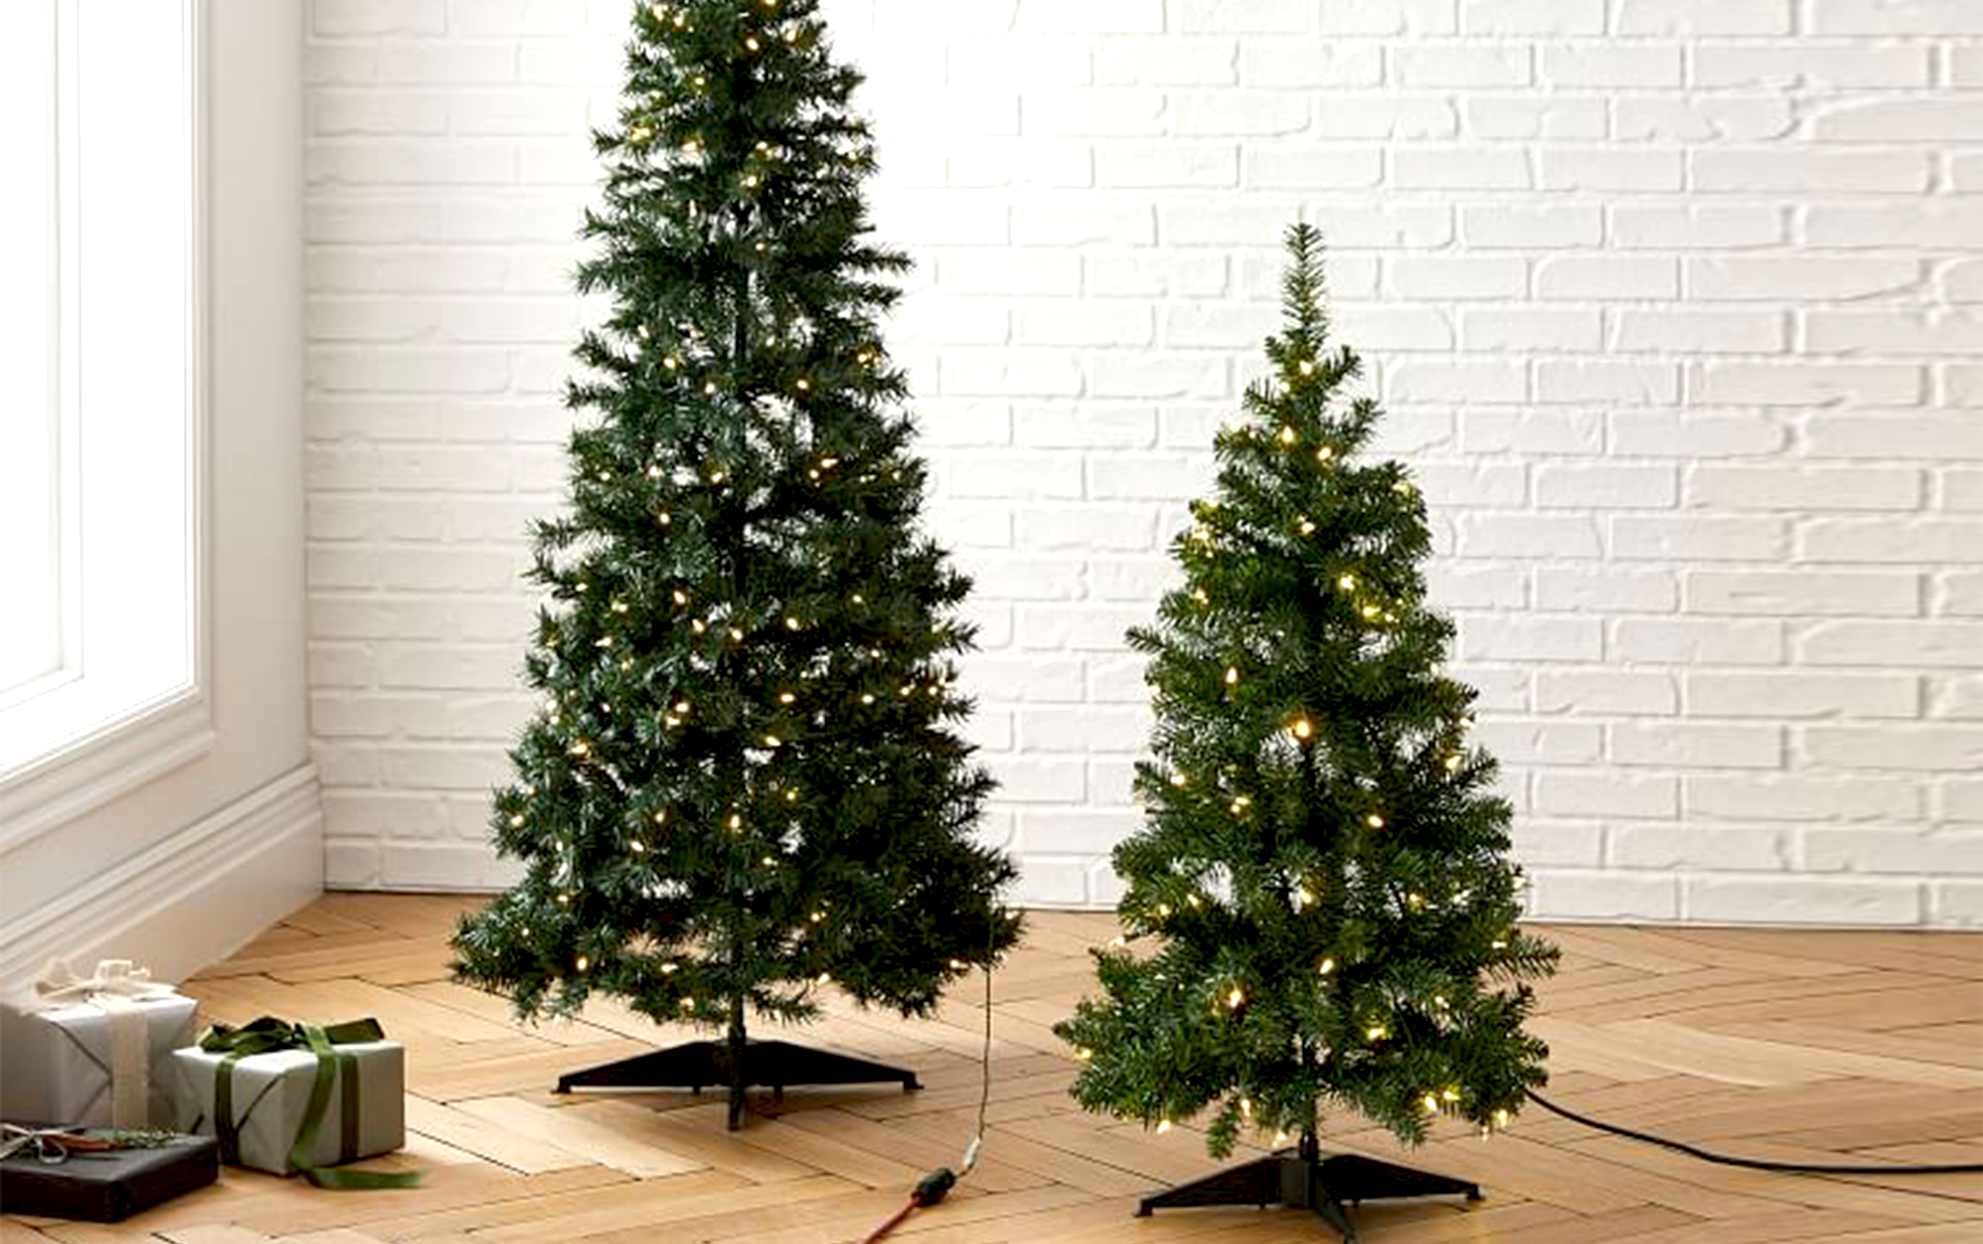 Pop-up Christmas trees with a white brick wall behind